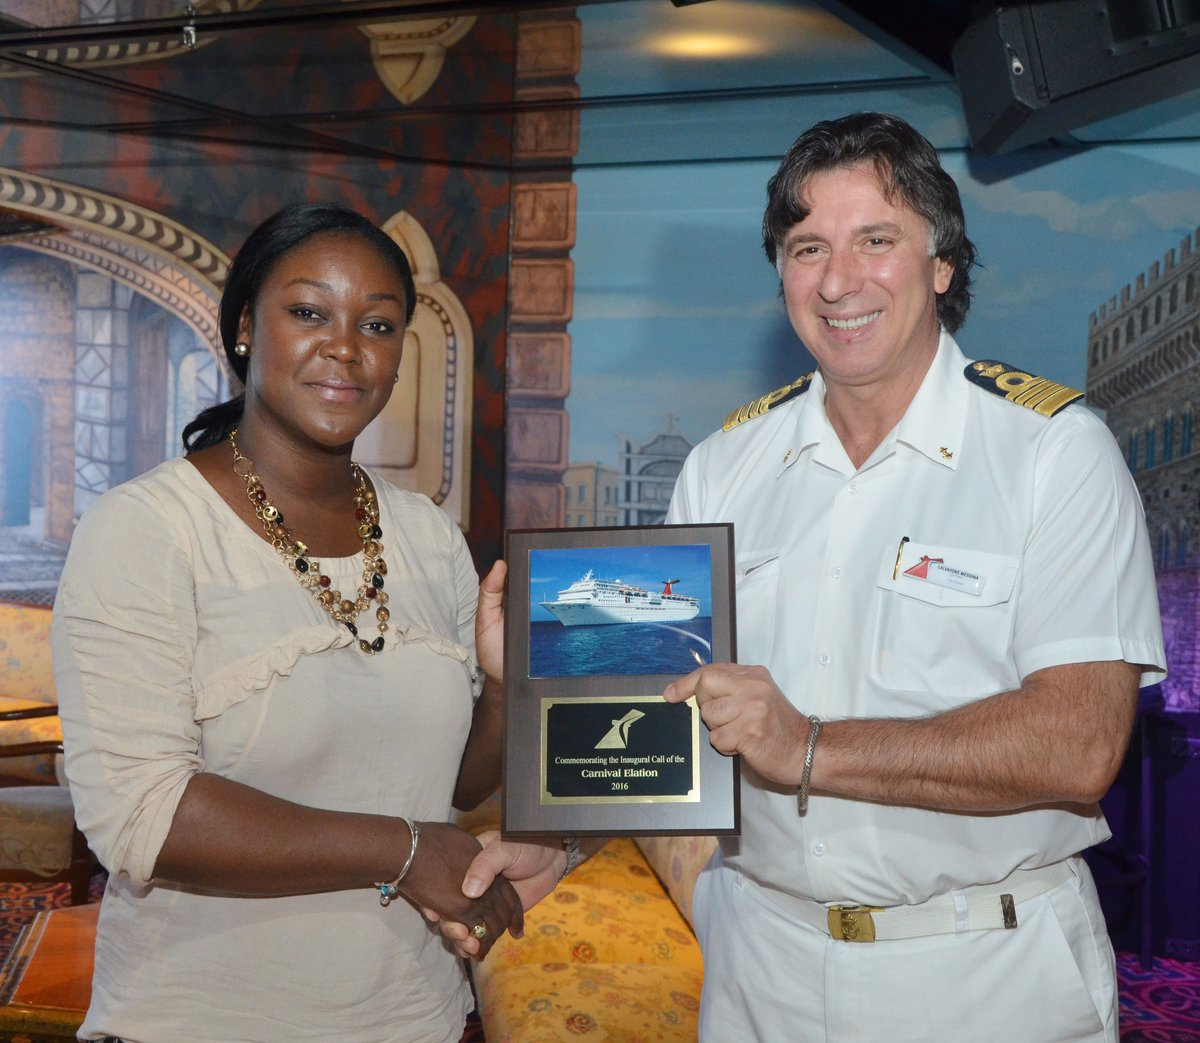 SEC. TRACY DAVIDSON-CELESTINE RECEIVES TOKEN FROM CAPT SALVATORE MESSINA DSC_0492.jpg